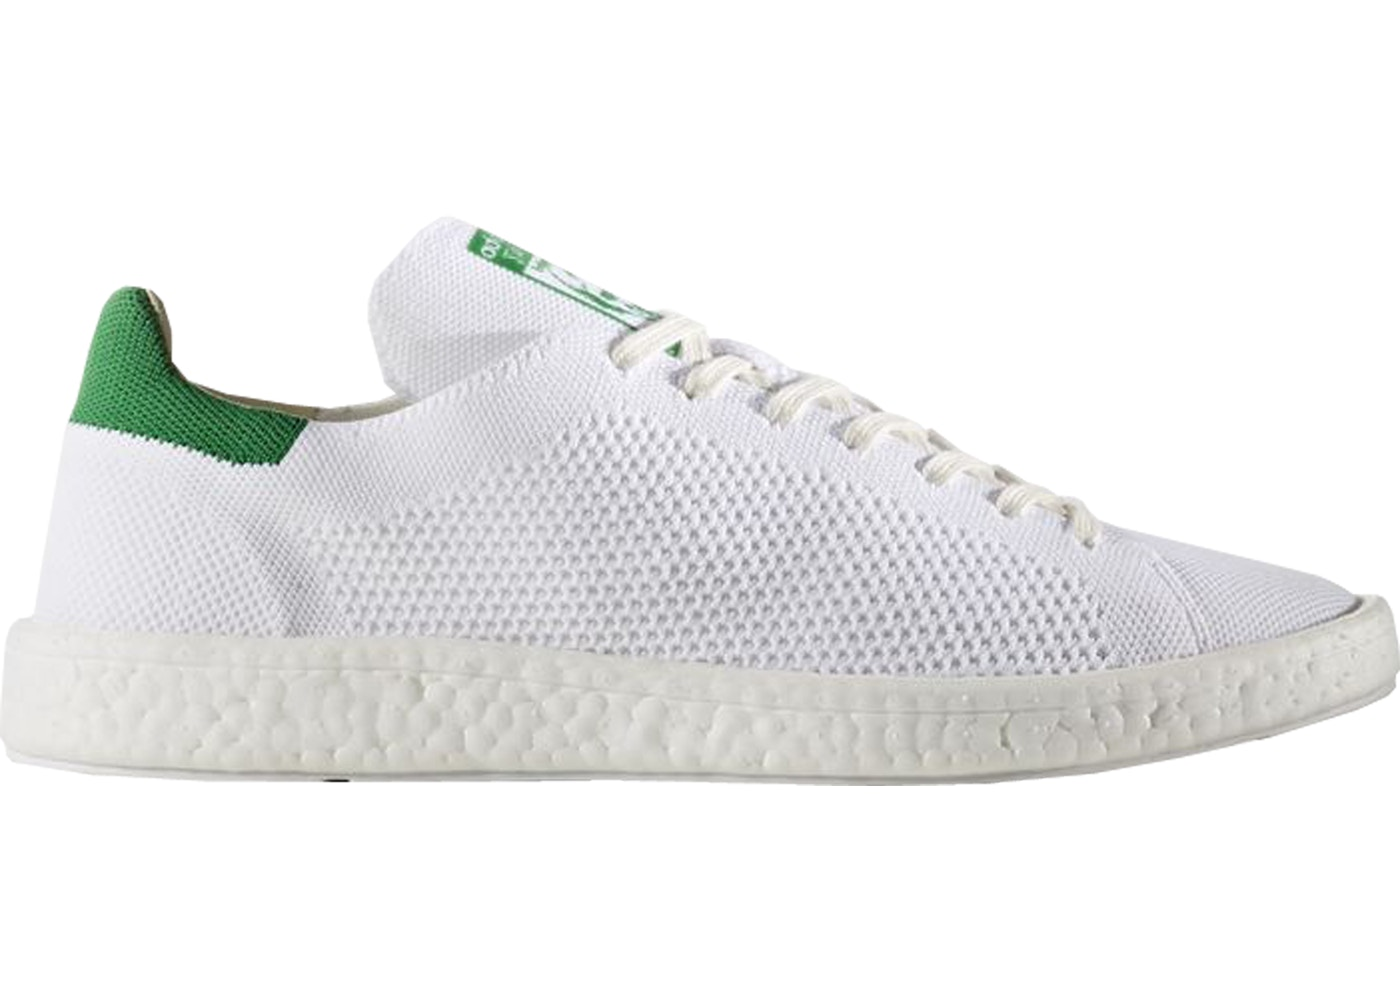 4d19bc3a533 adidas Stan Smith Boost Primeknit White Green - BB0013